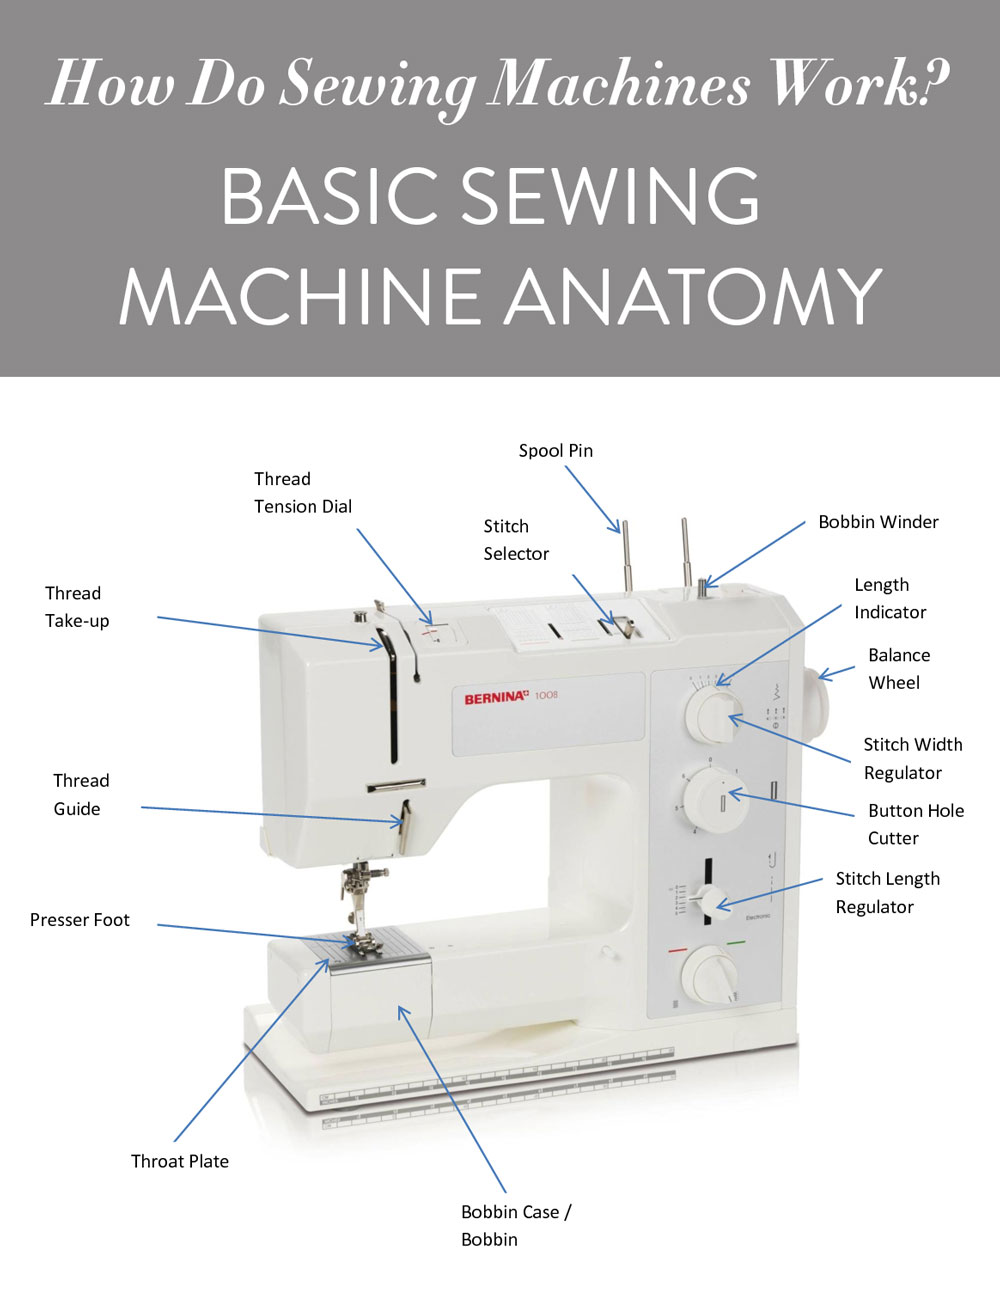 How Do Sewing Machines Work? Basic Sewing Machine Anatomy | Suzy Quilts https://suzyquilts.com/how-sewing-machines-work